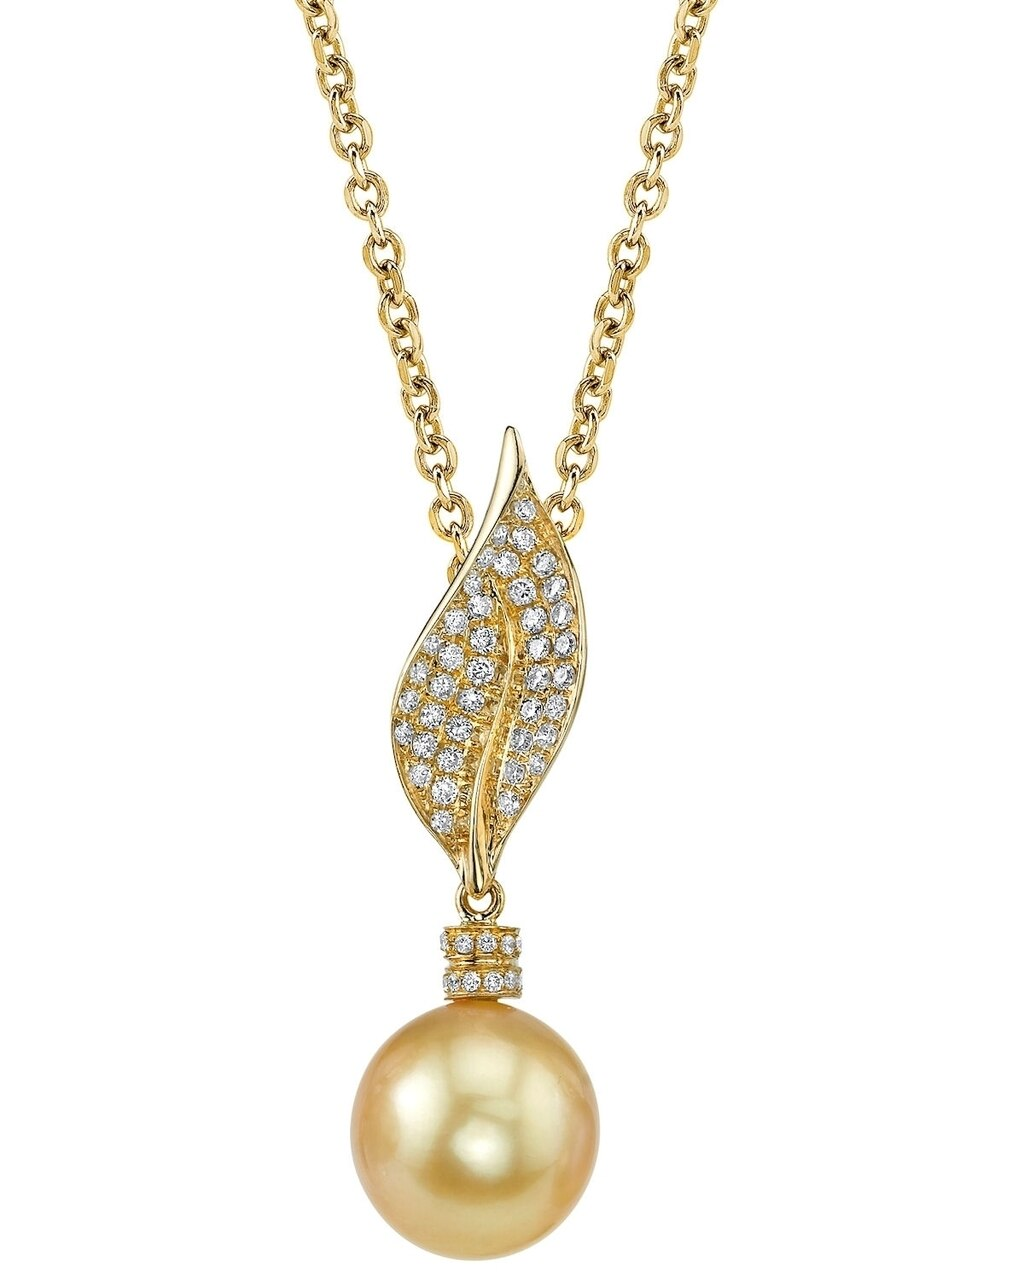 This exquisite pendant features an 10.0-11.0mm Gold South Sea Pearl, handpicked for its luminous luster